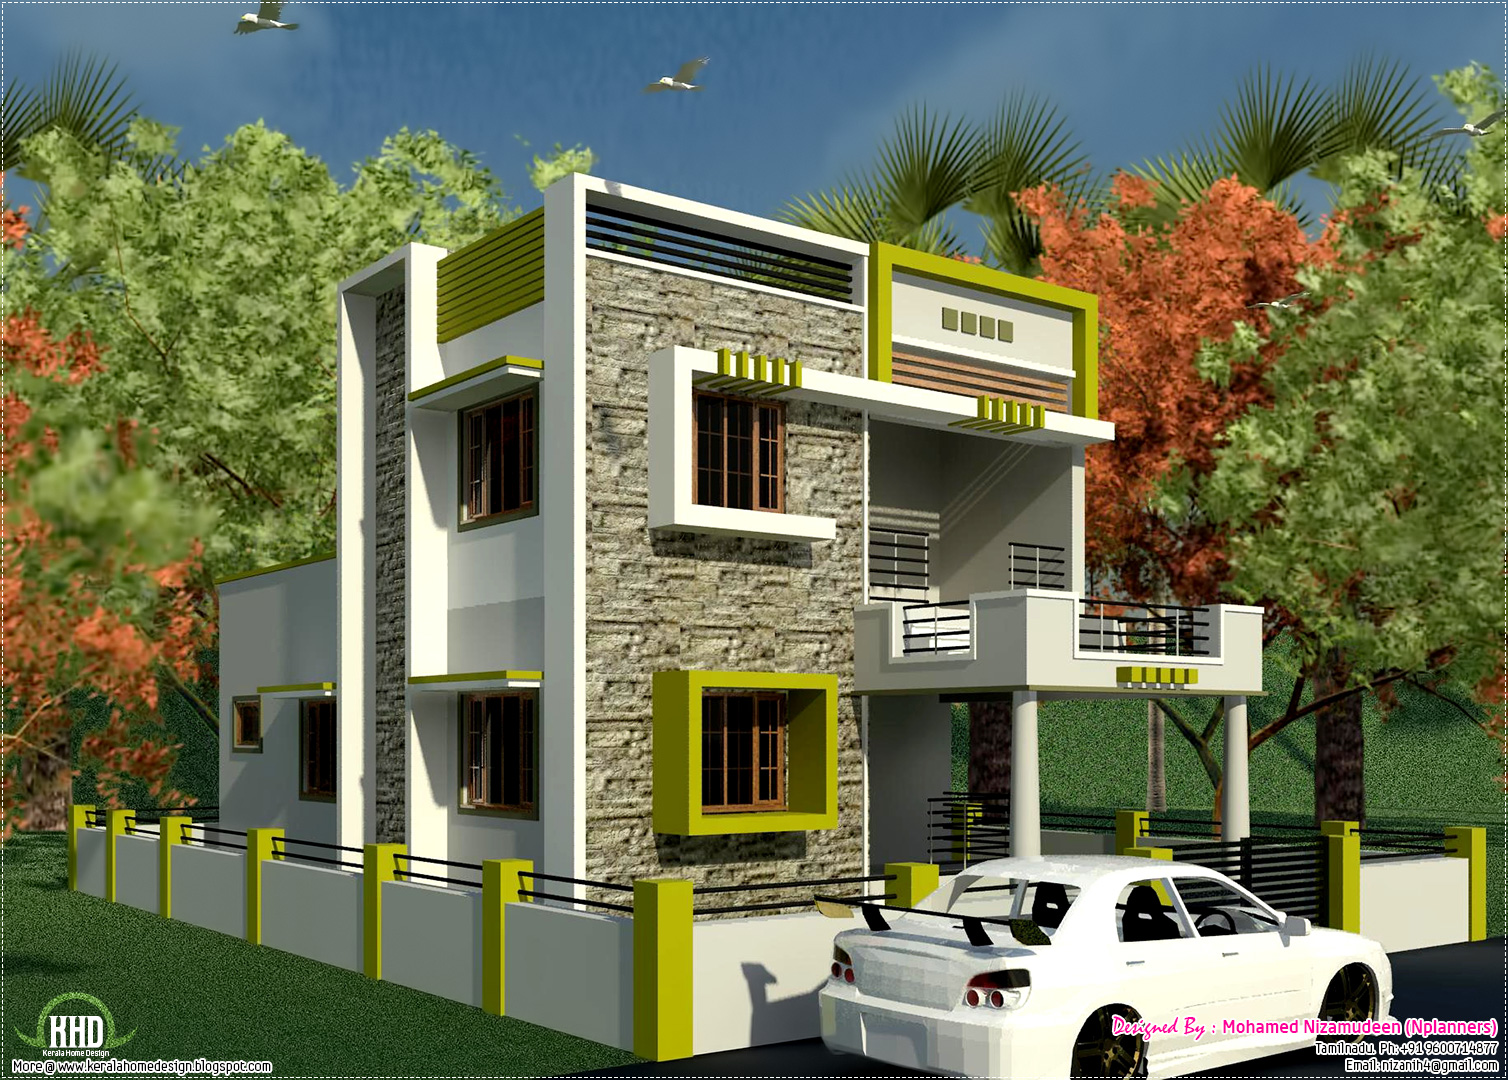 South indian style new modern 1460 sq feet house design Simple house designs indian style